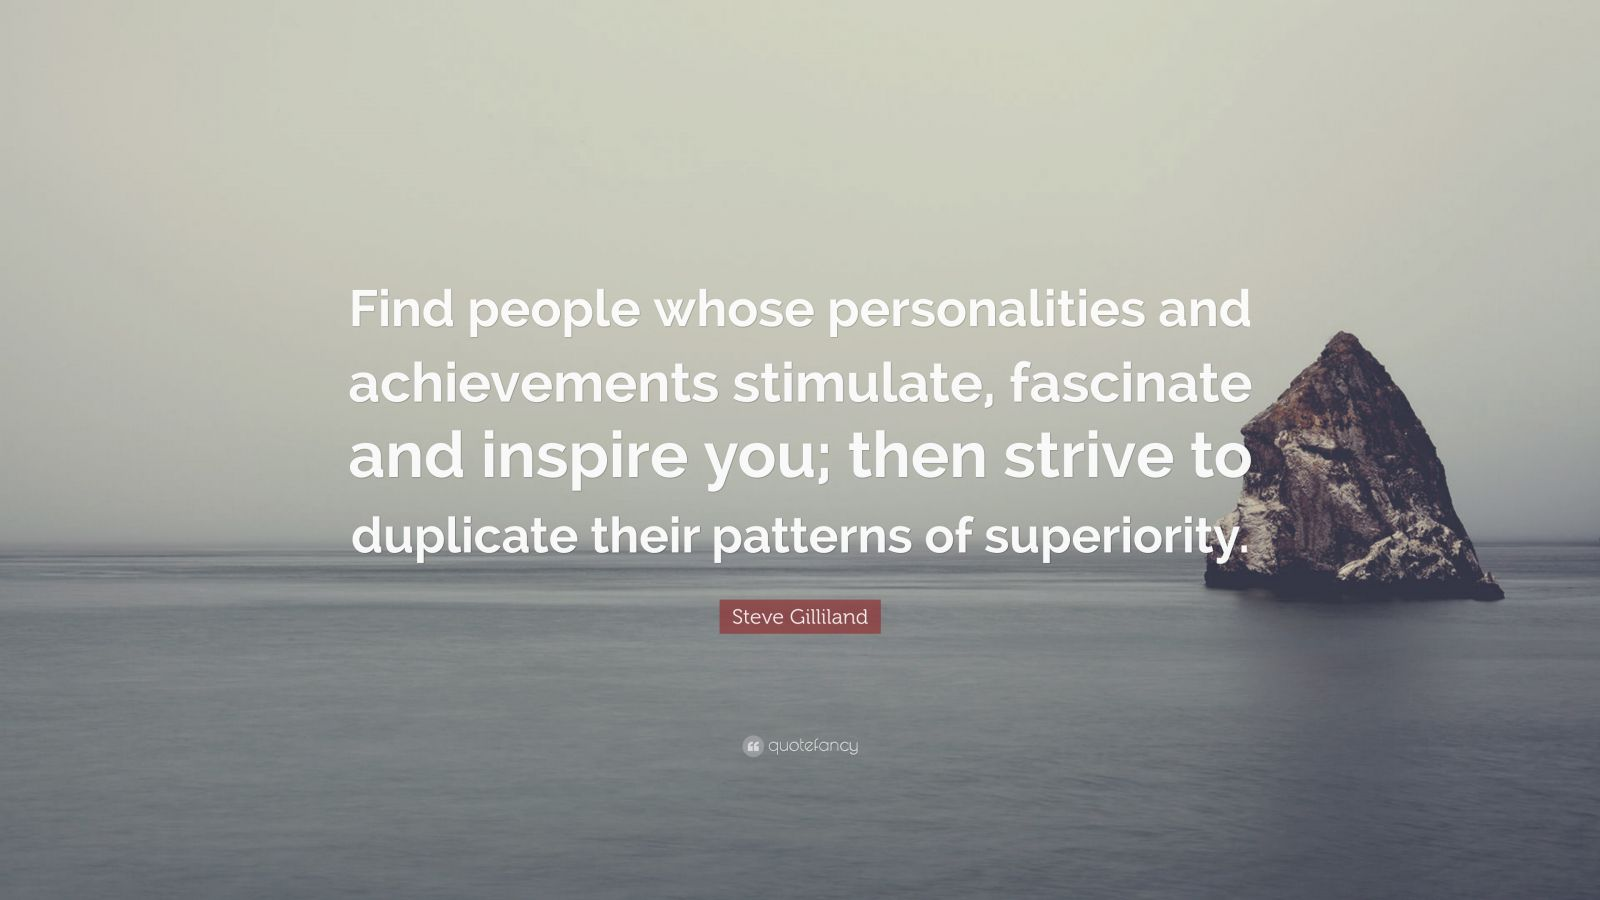 """Steve Gilliland Quote: """"Find people whose personalities and achievements stimulate, fascinate and inspire you; then strive to duplicate their patterns of superiority."""""""